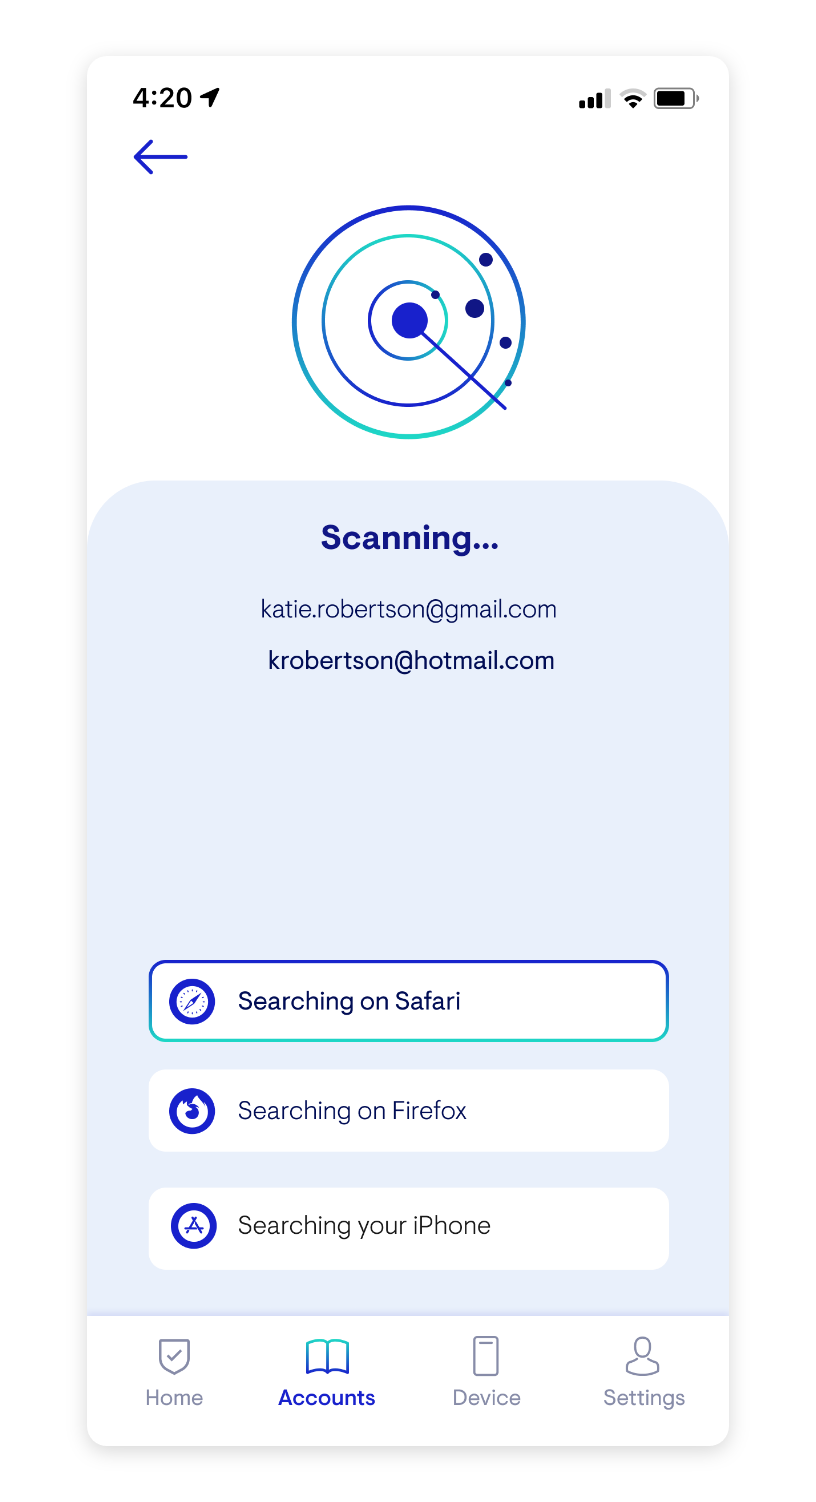 Hi Fi Mockup: Searching for Accounts Page